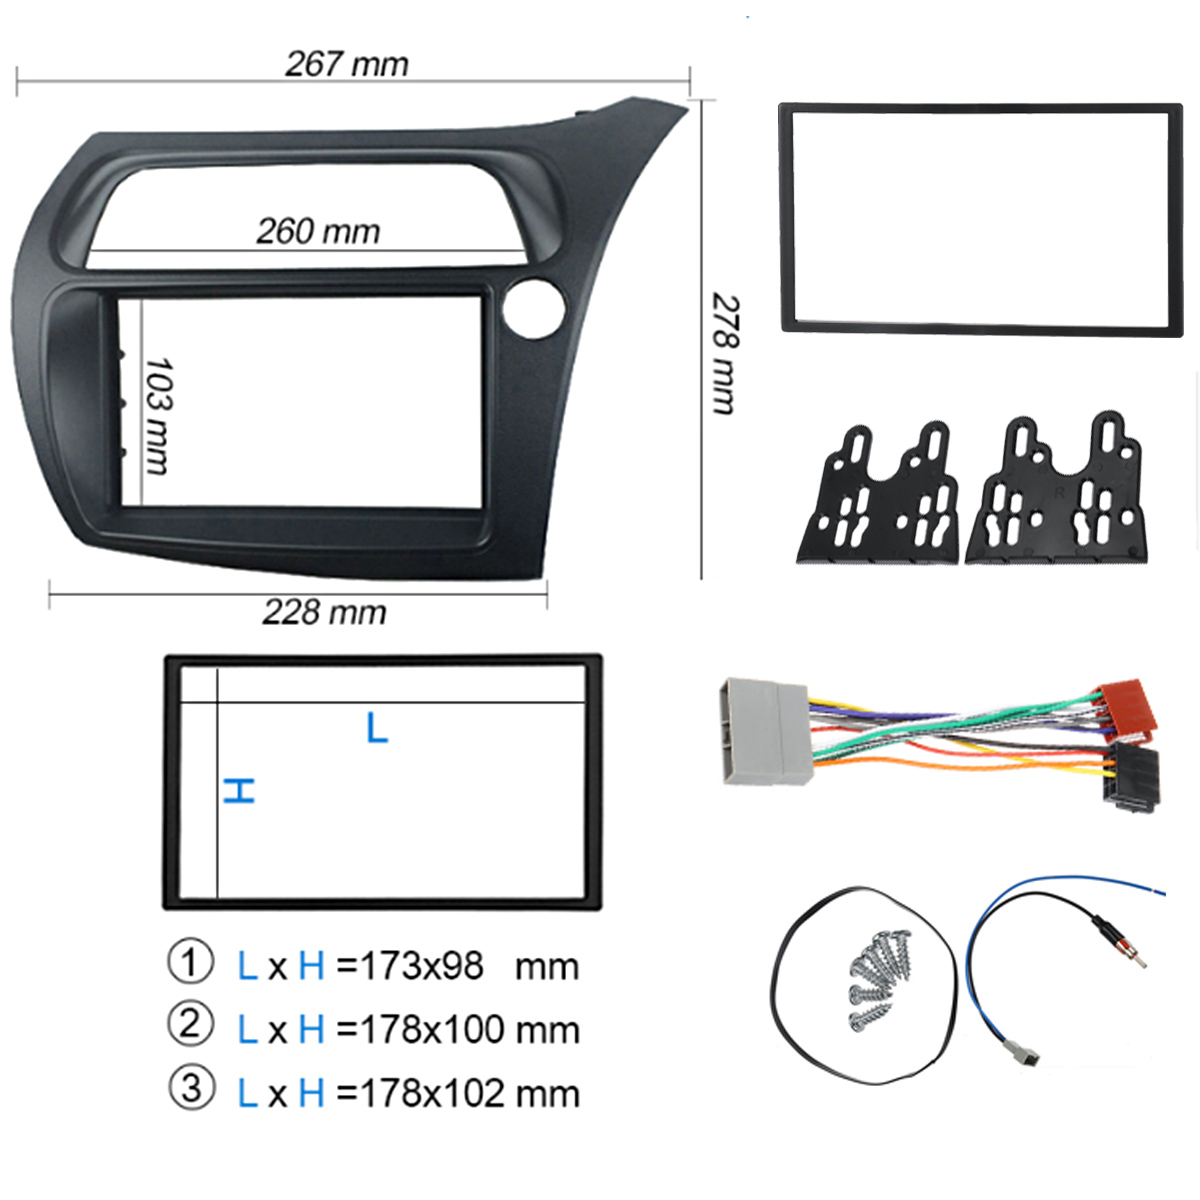 2 DIN Car Radio Fascia Automobile Refitting Sound Stereo Panel Kit For HONDA Civic 2006-2011